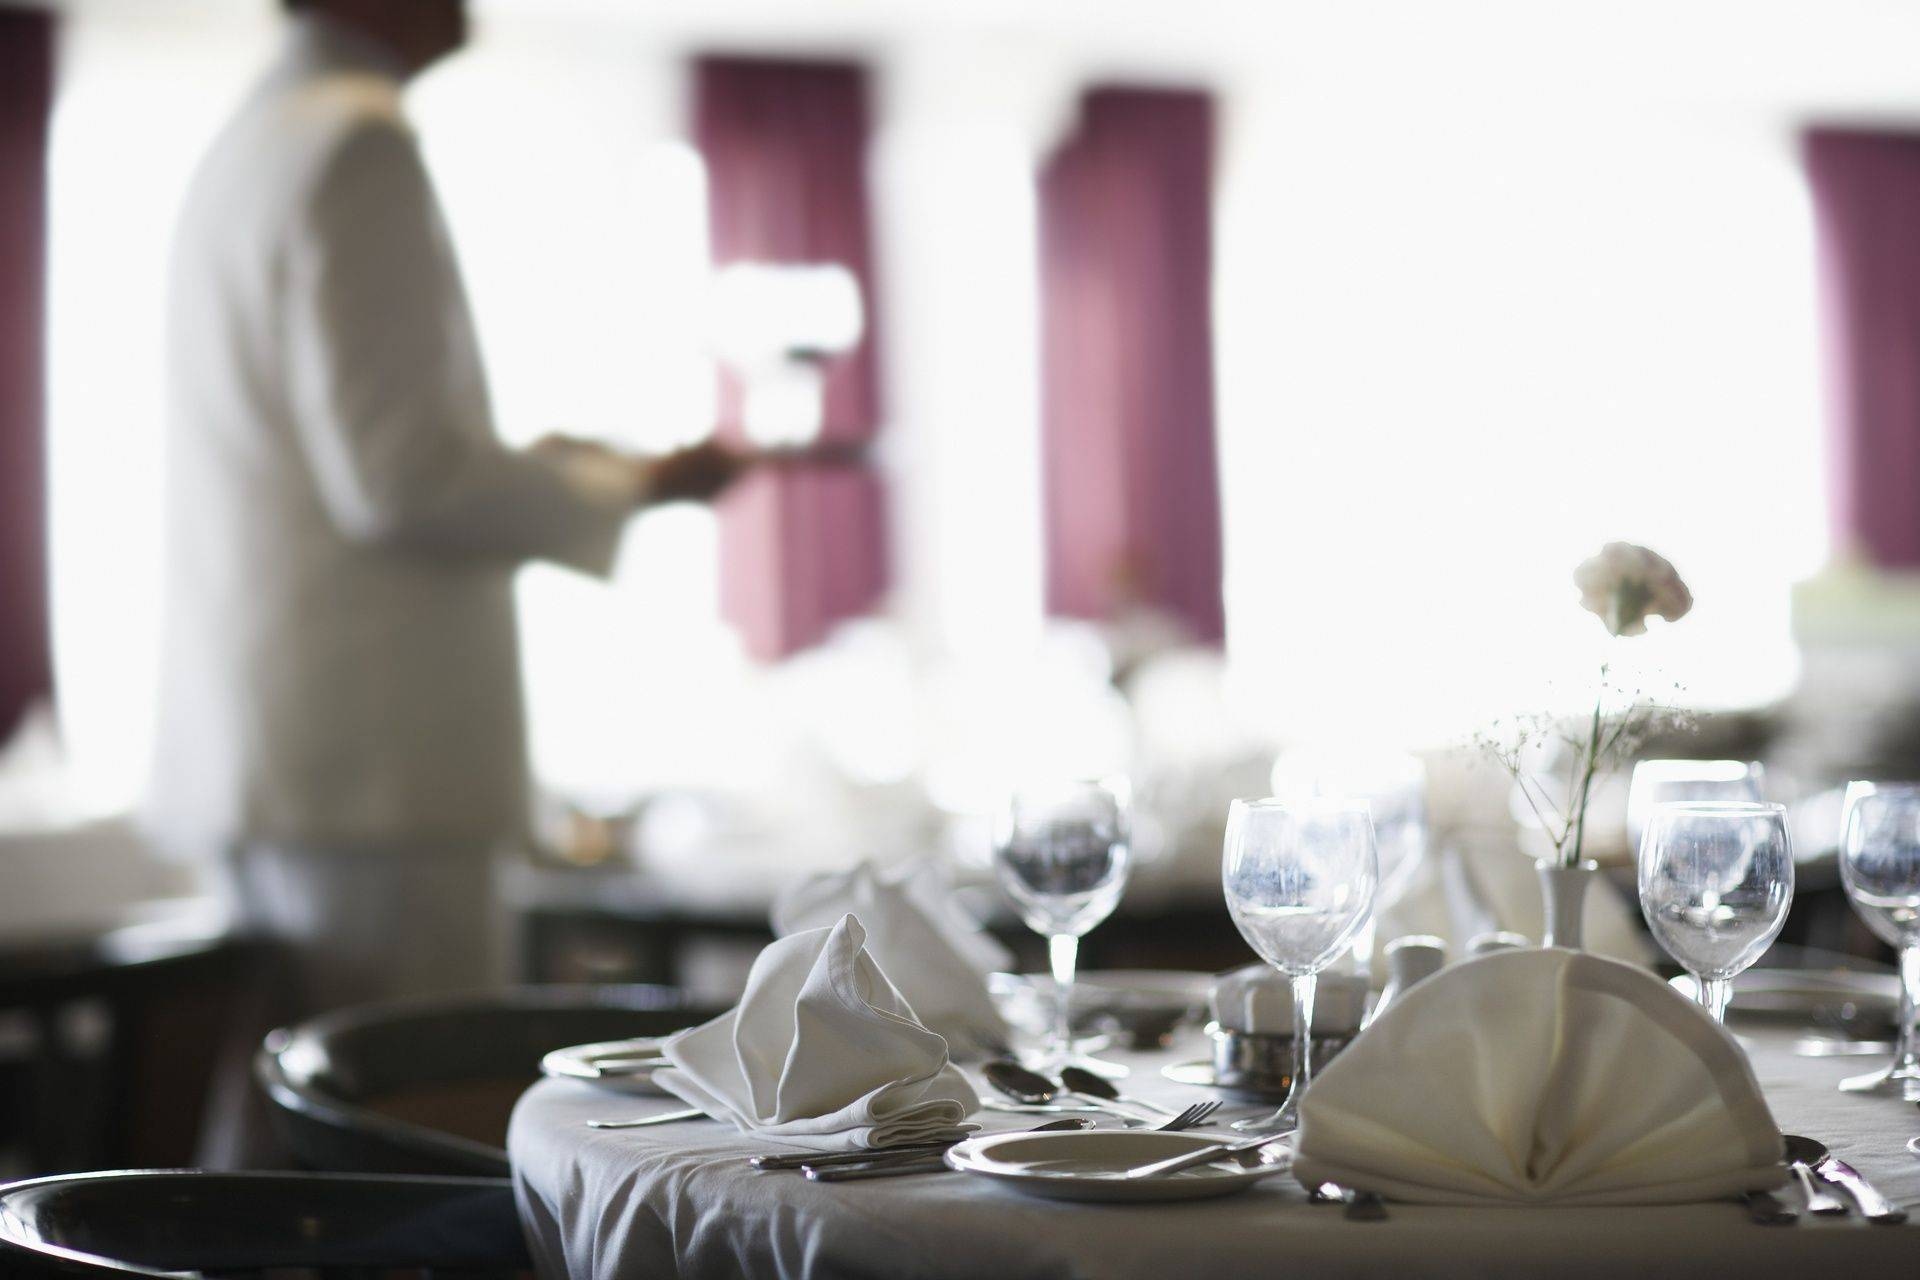 The Oaks, function room hire, at Nineteen by Dough, Weddings by Luke Downing, award winning chef